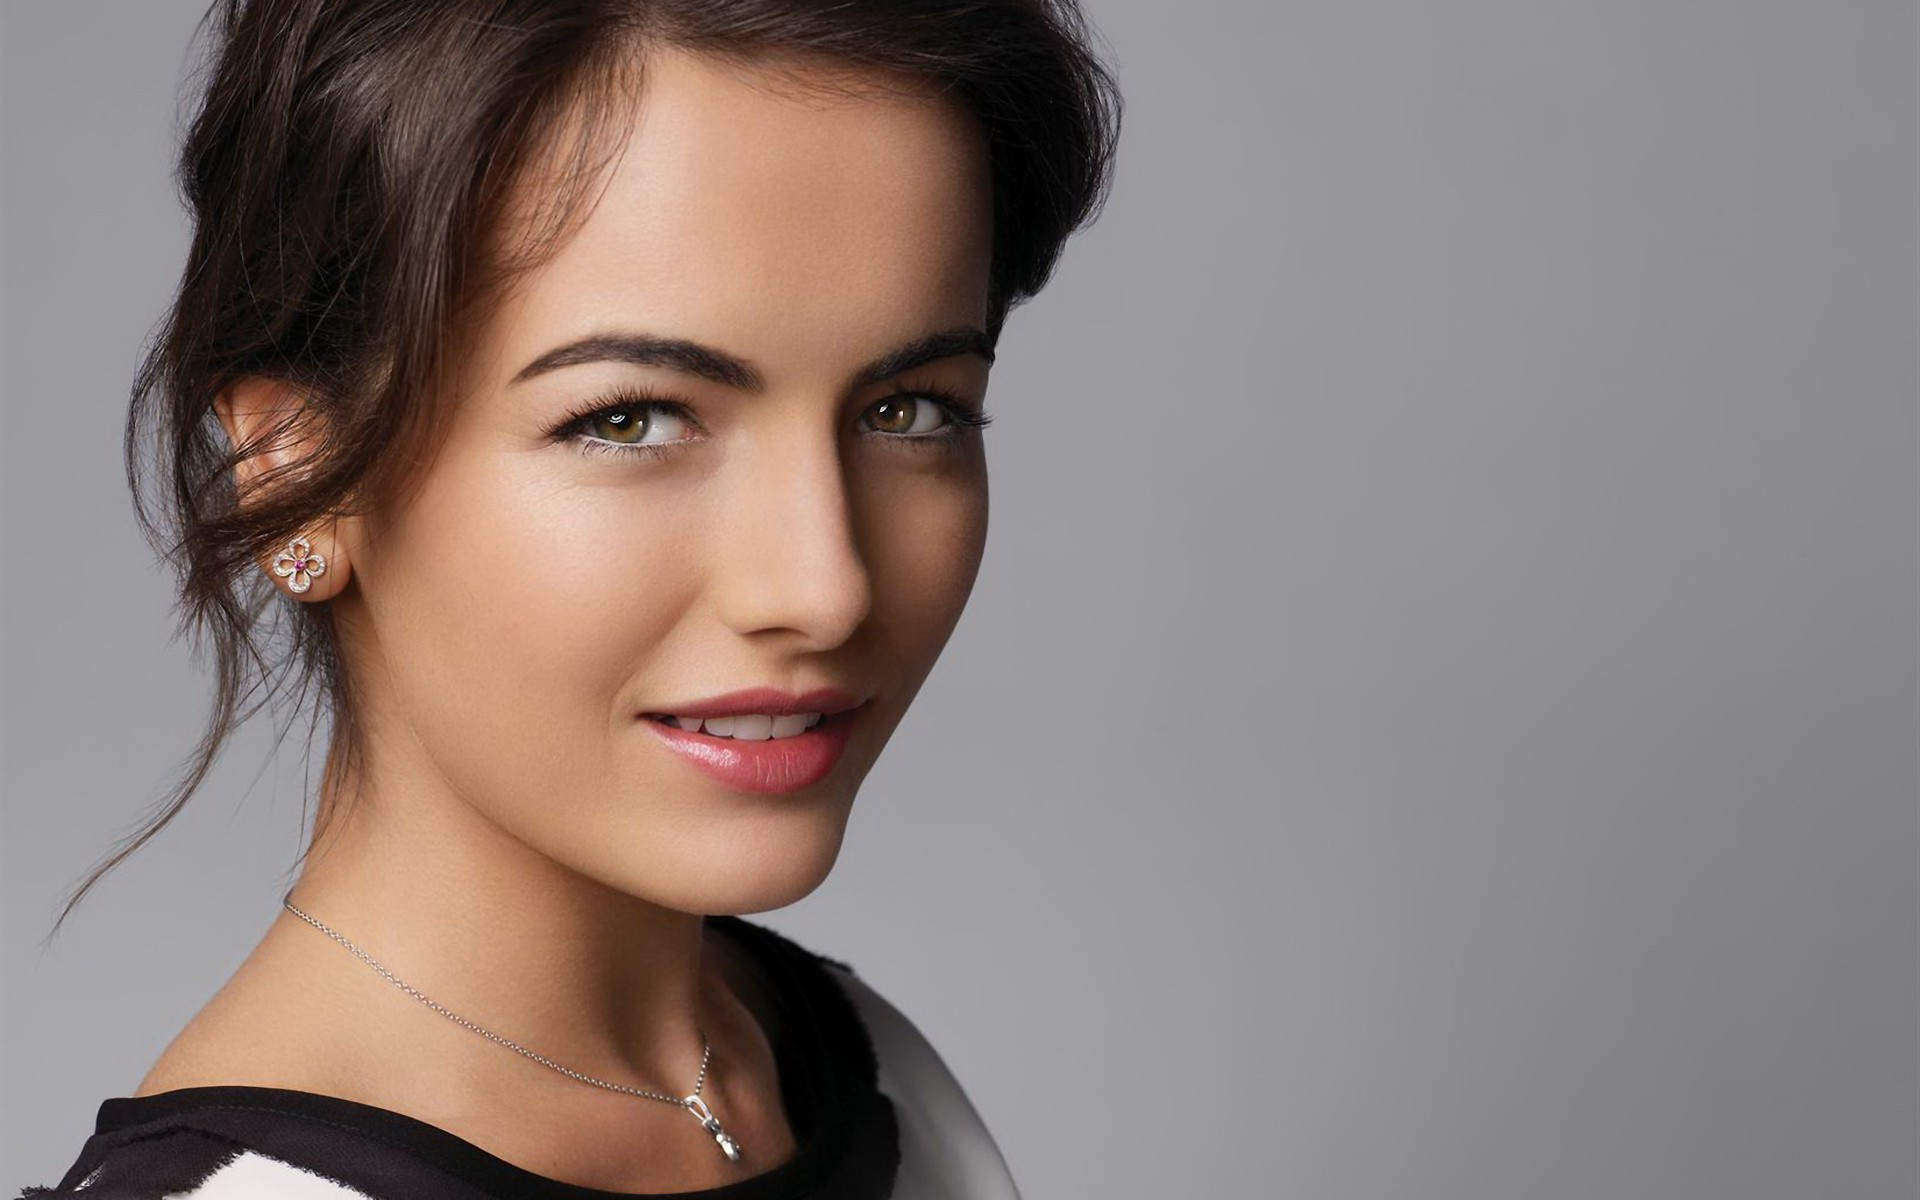 Stunning Camilla Belle Wallpaper